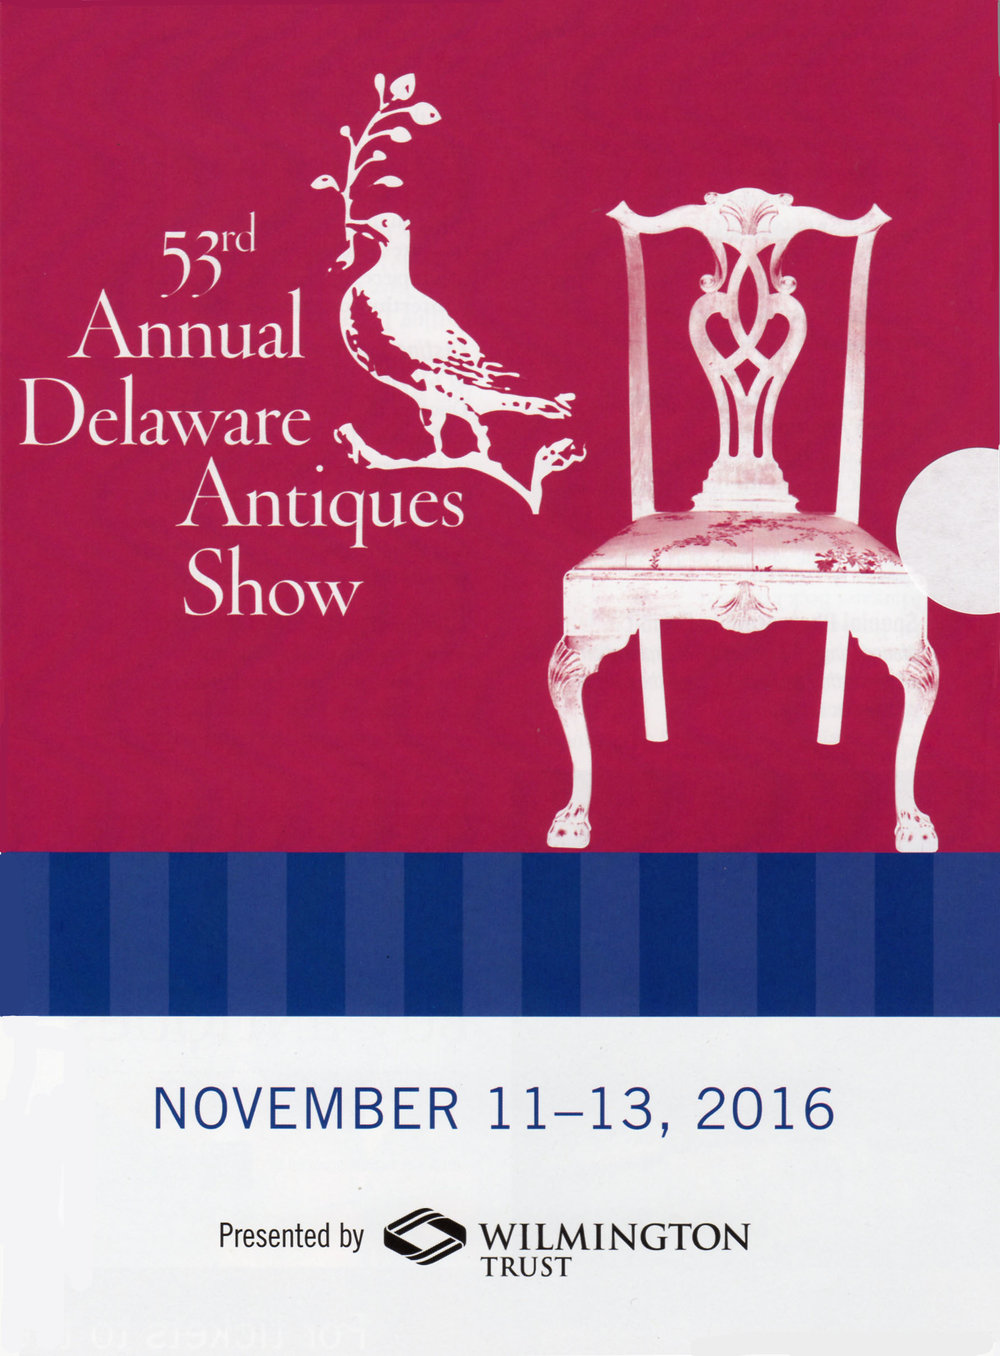 In only a few weeks, we will be exhibiting at the annual Delaware Antiques Show.